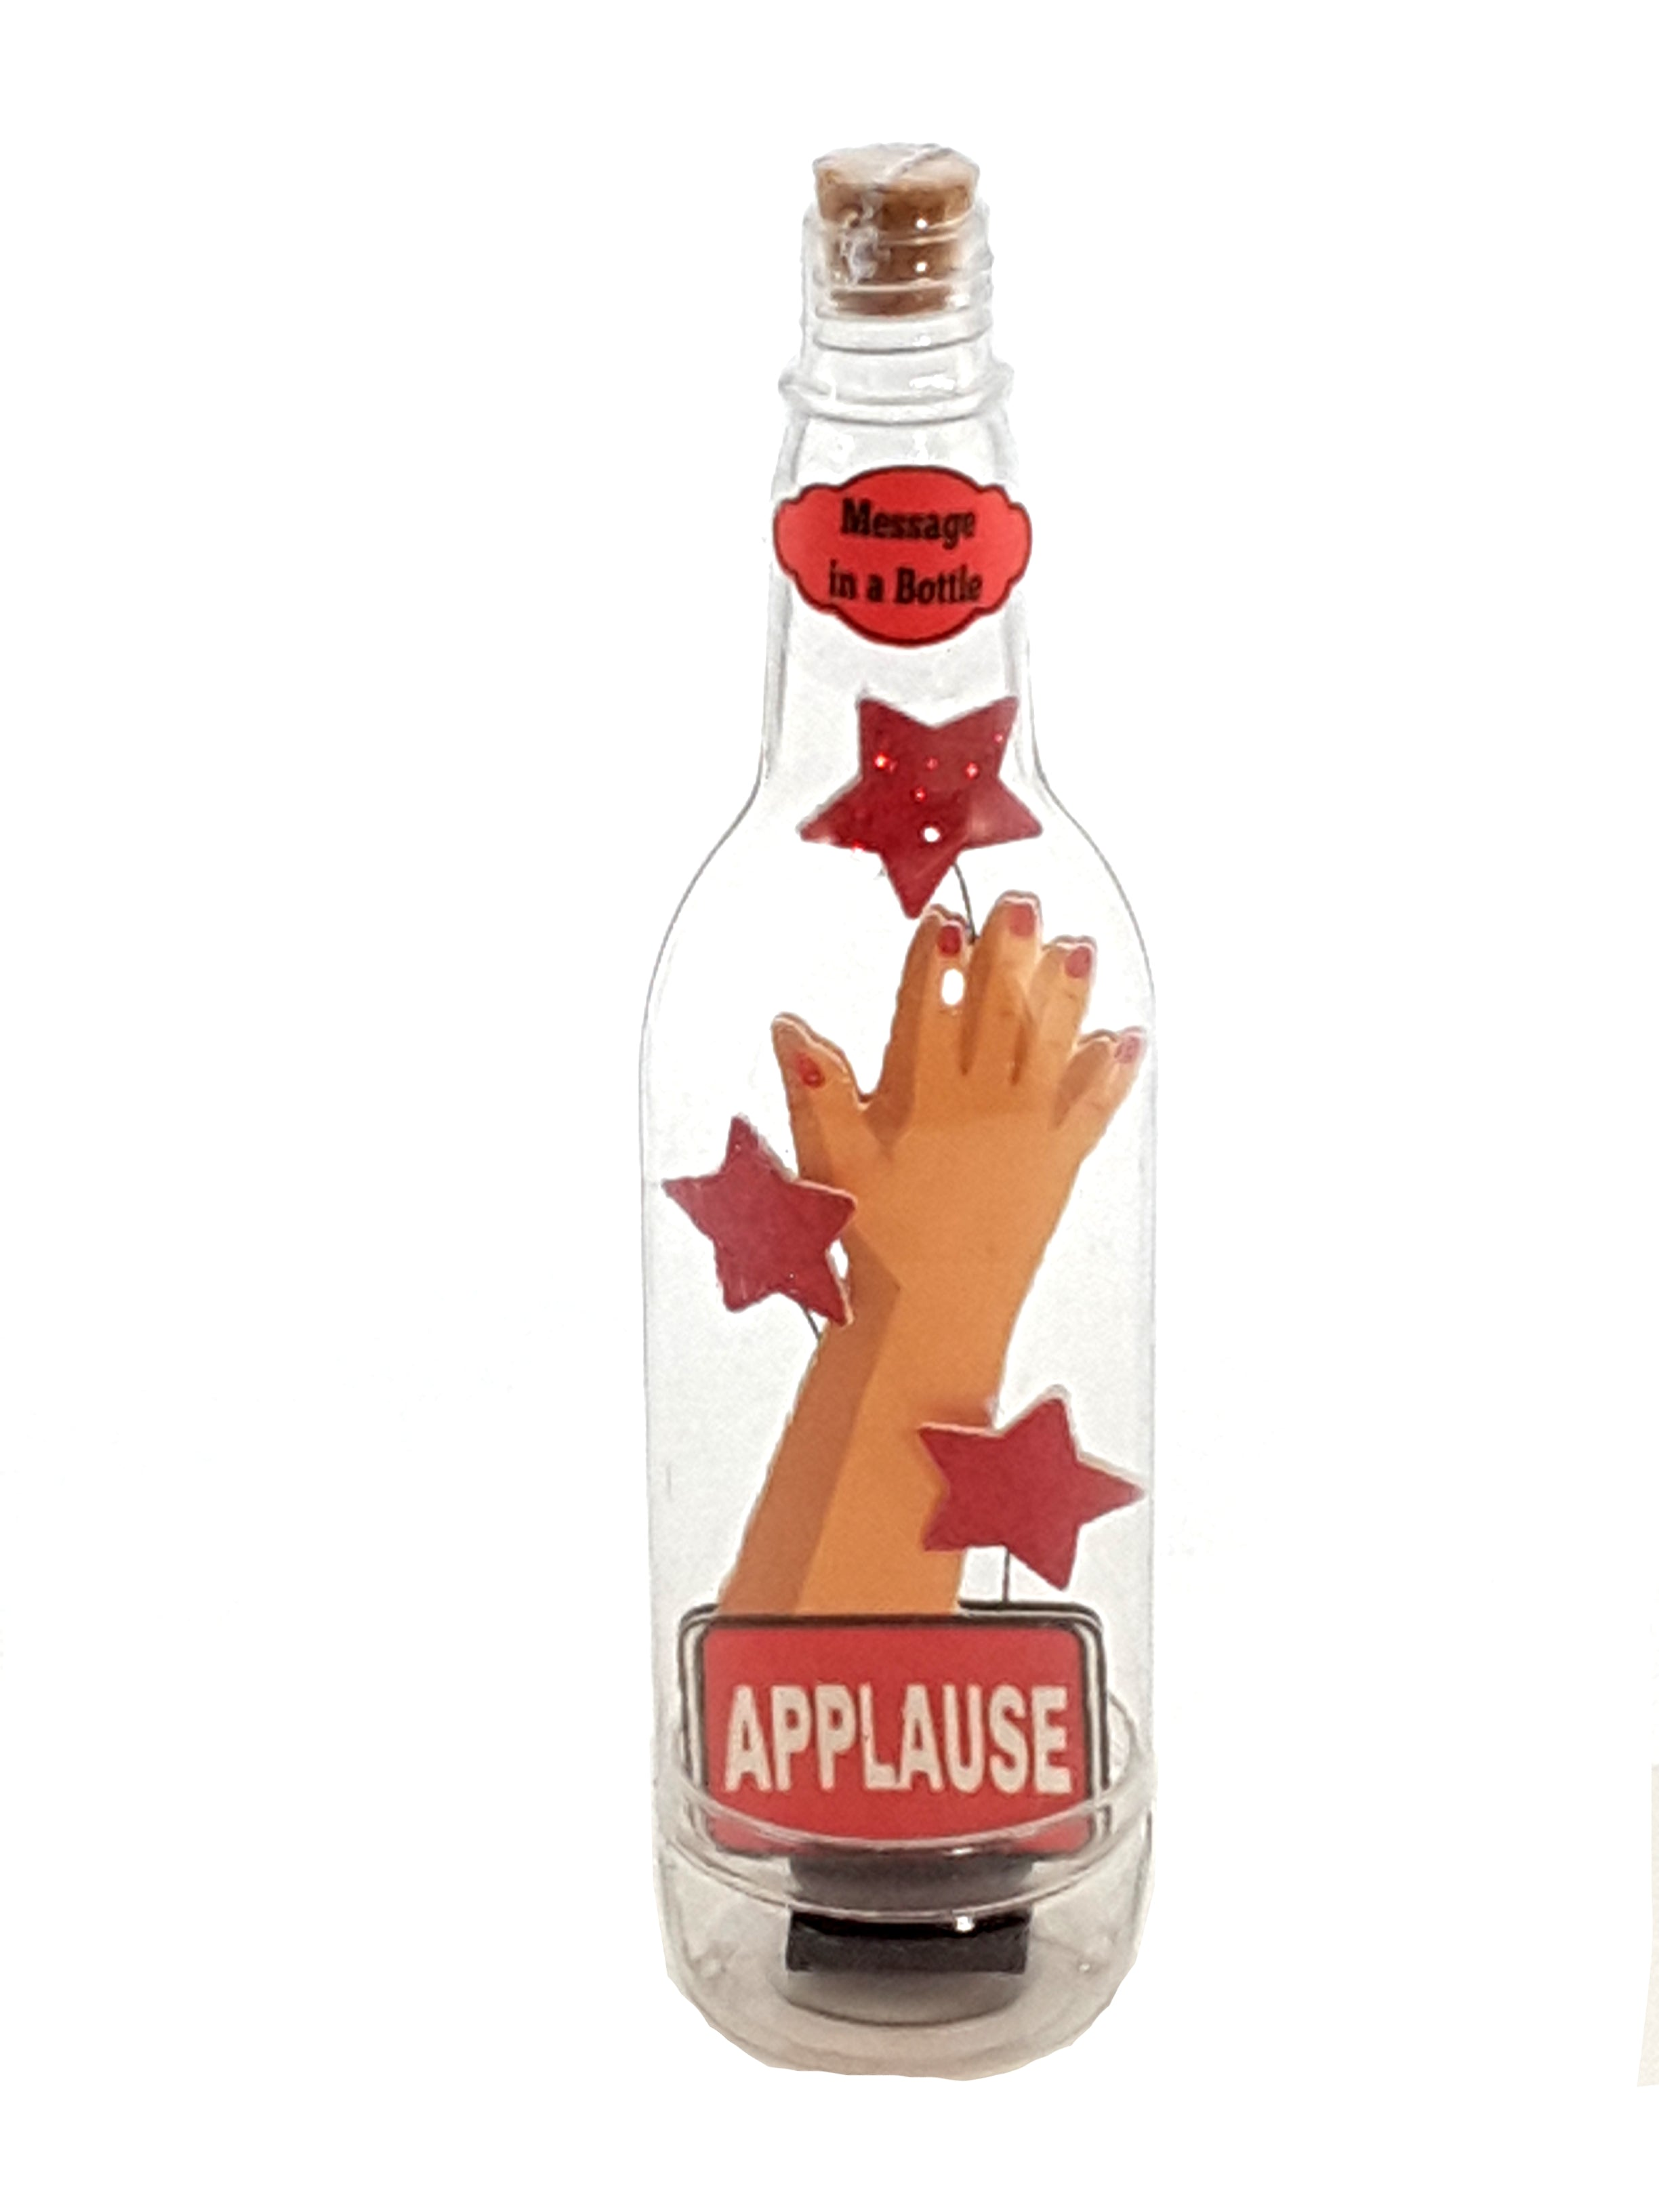 Personalized Message in a Bottle featuring Applause - Crushing it! - The Last Word Bish